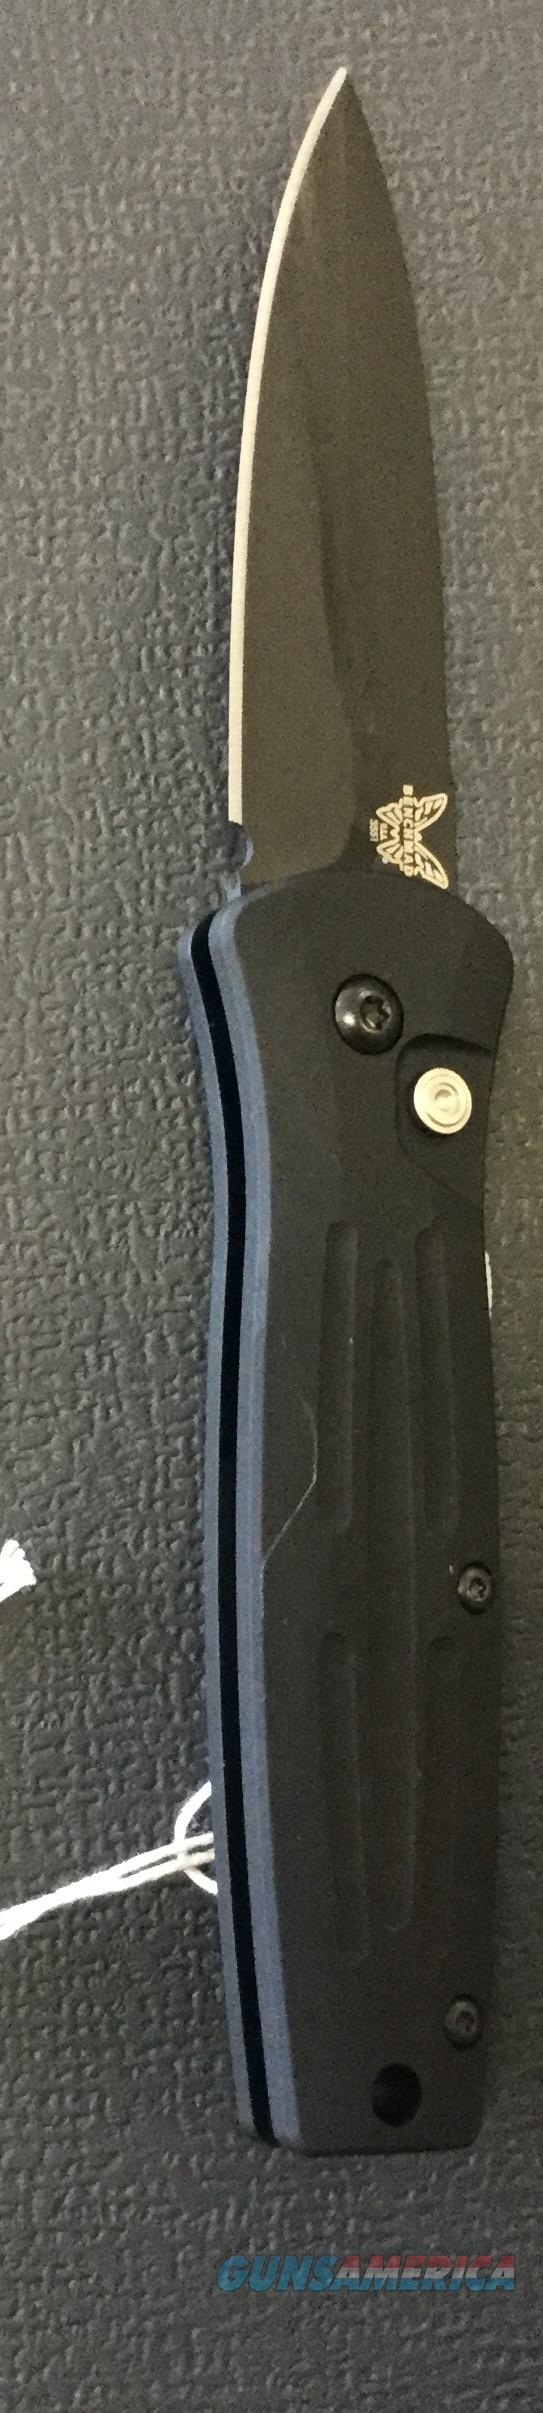 Benchmade 3551BK Pardue NIB NO CC FEES  Non-Guns > Knives/Swords > Knives > Folding Blade > Hand Made